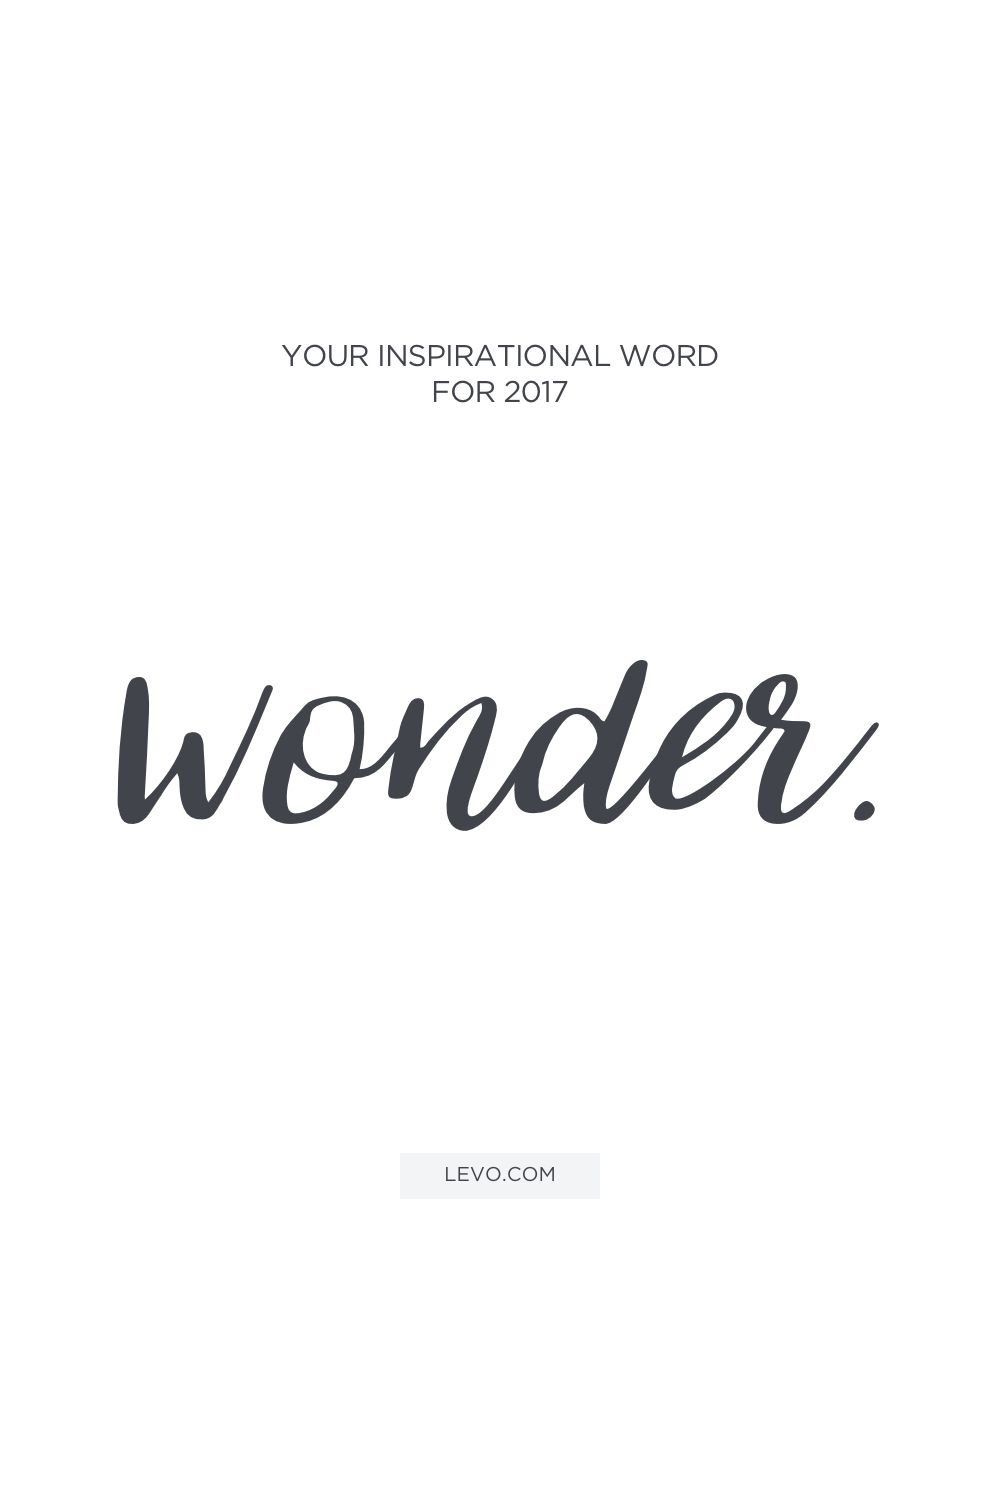 What Will Be Your Inspirational Word For 2017? Words